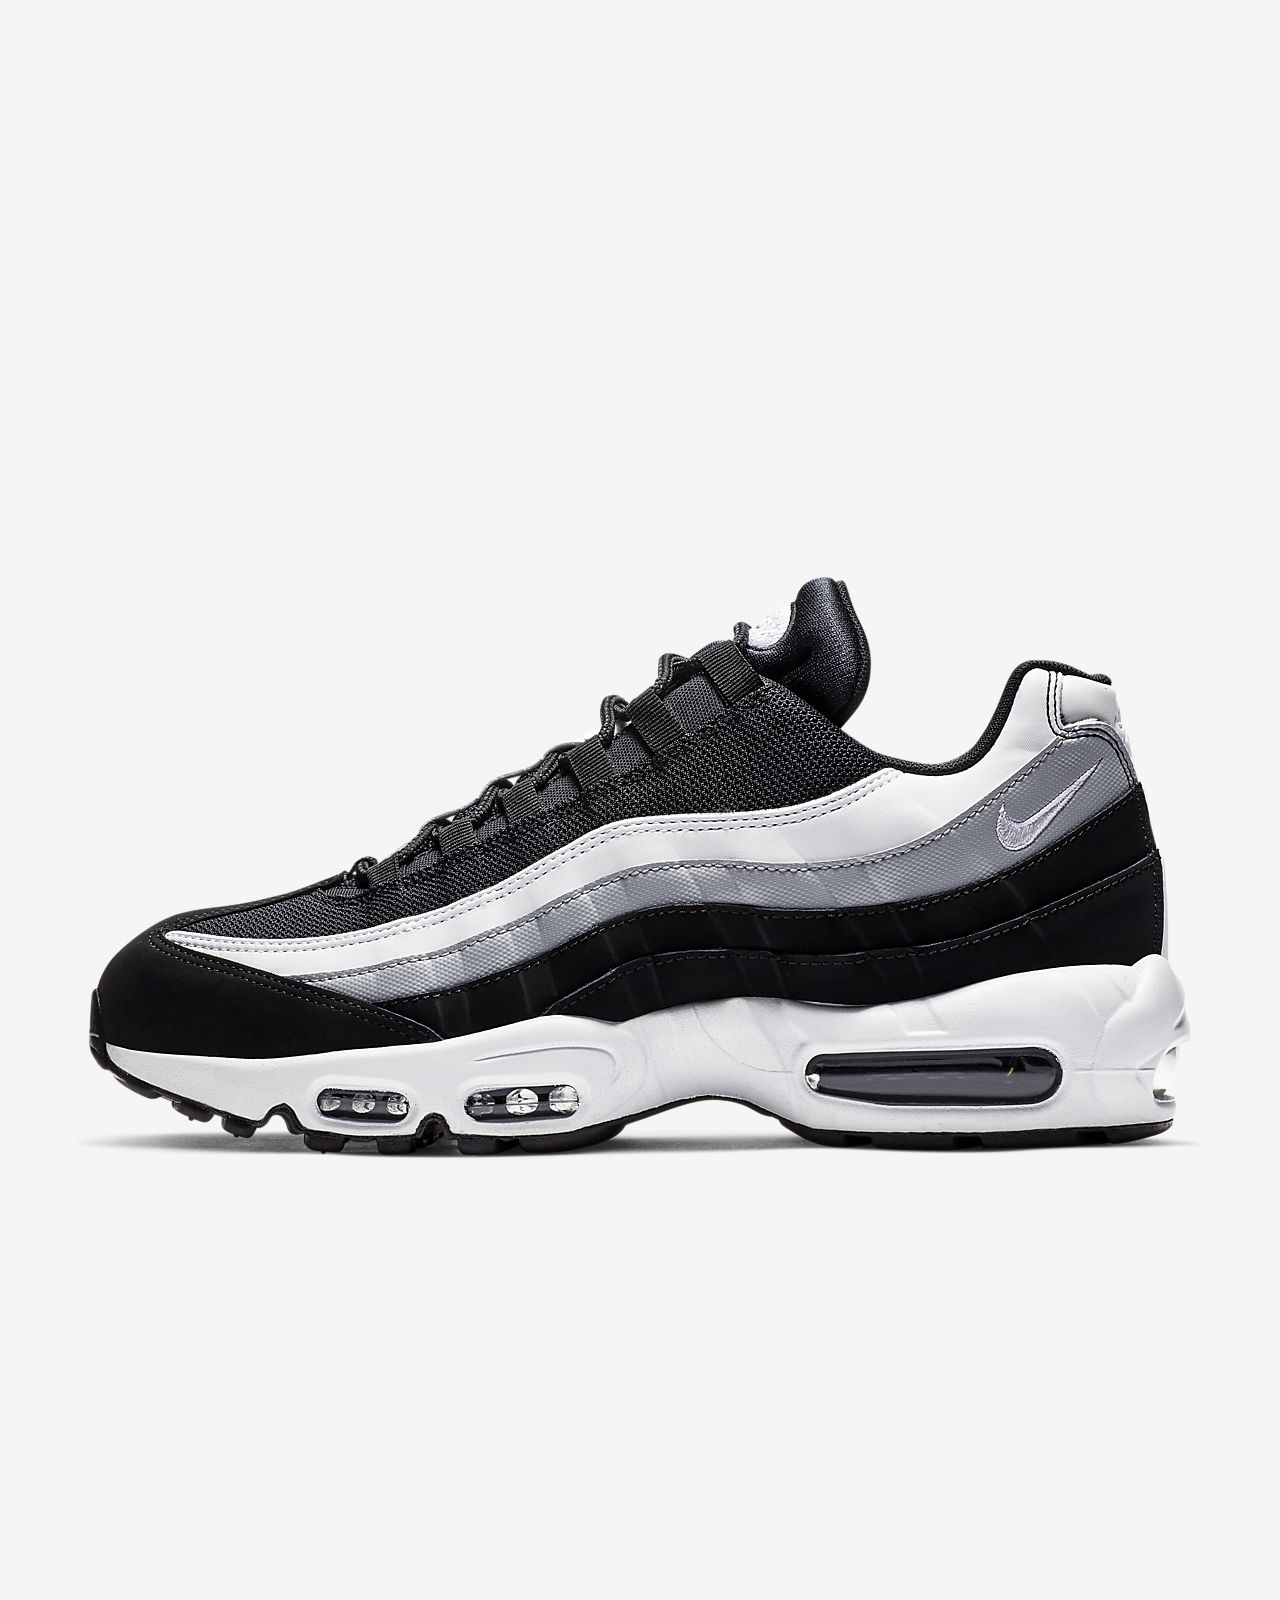 online retailer eb005 27ed6 ... Nike Air Max 95 Essential Men s Shoe